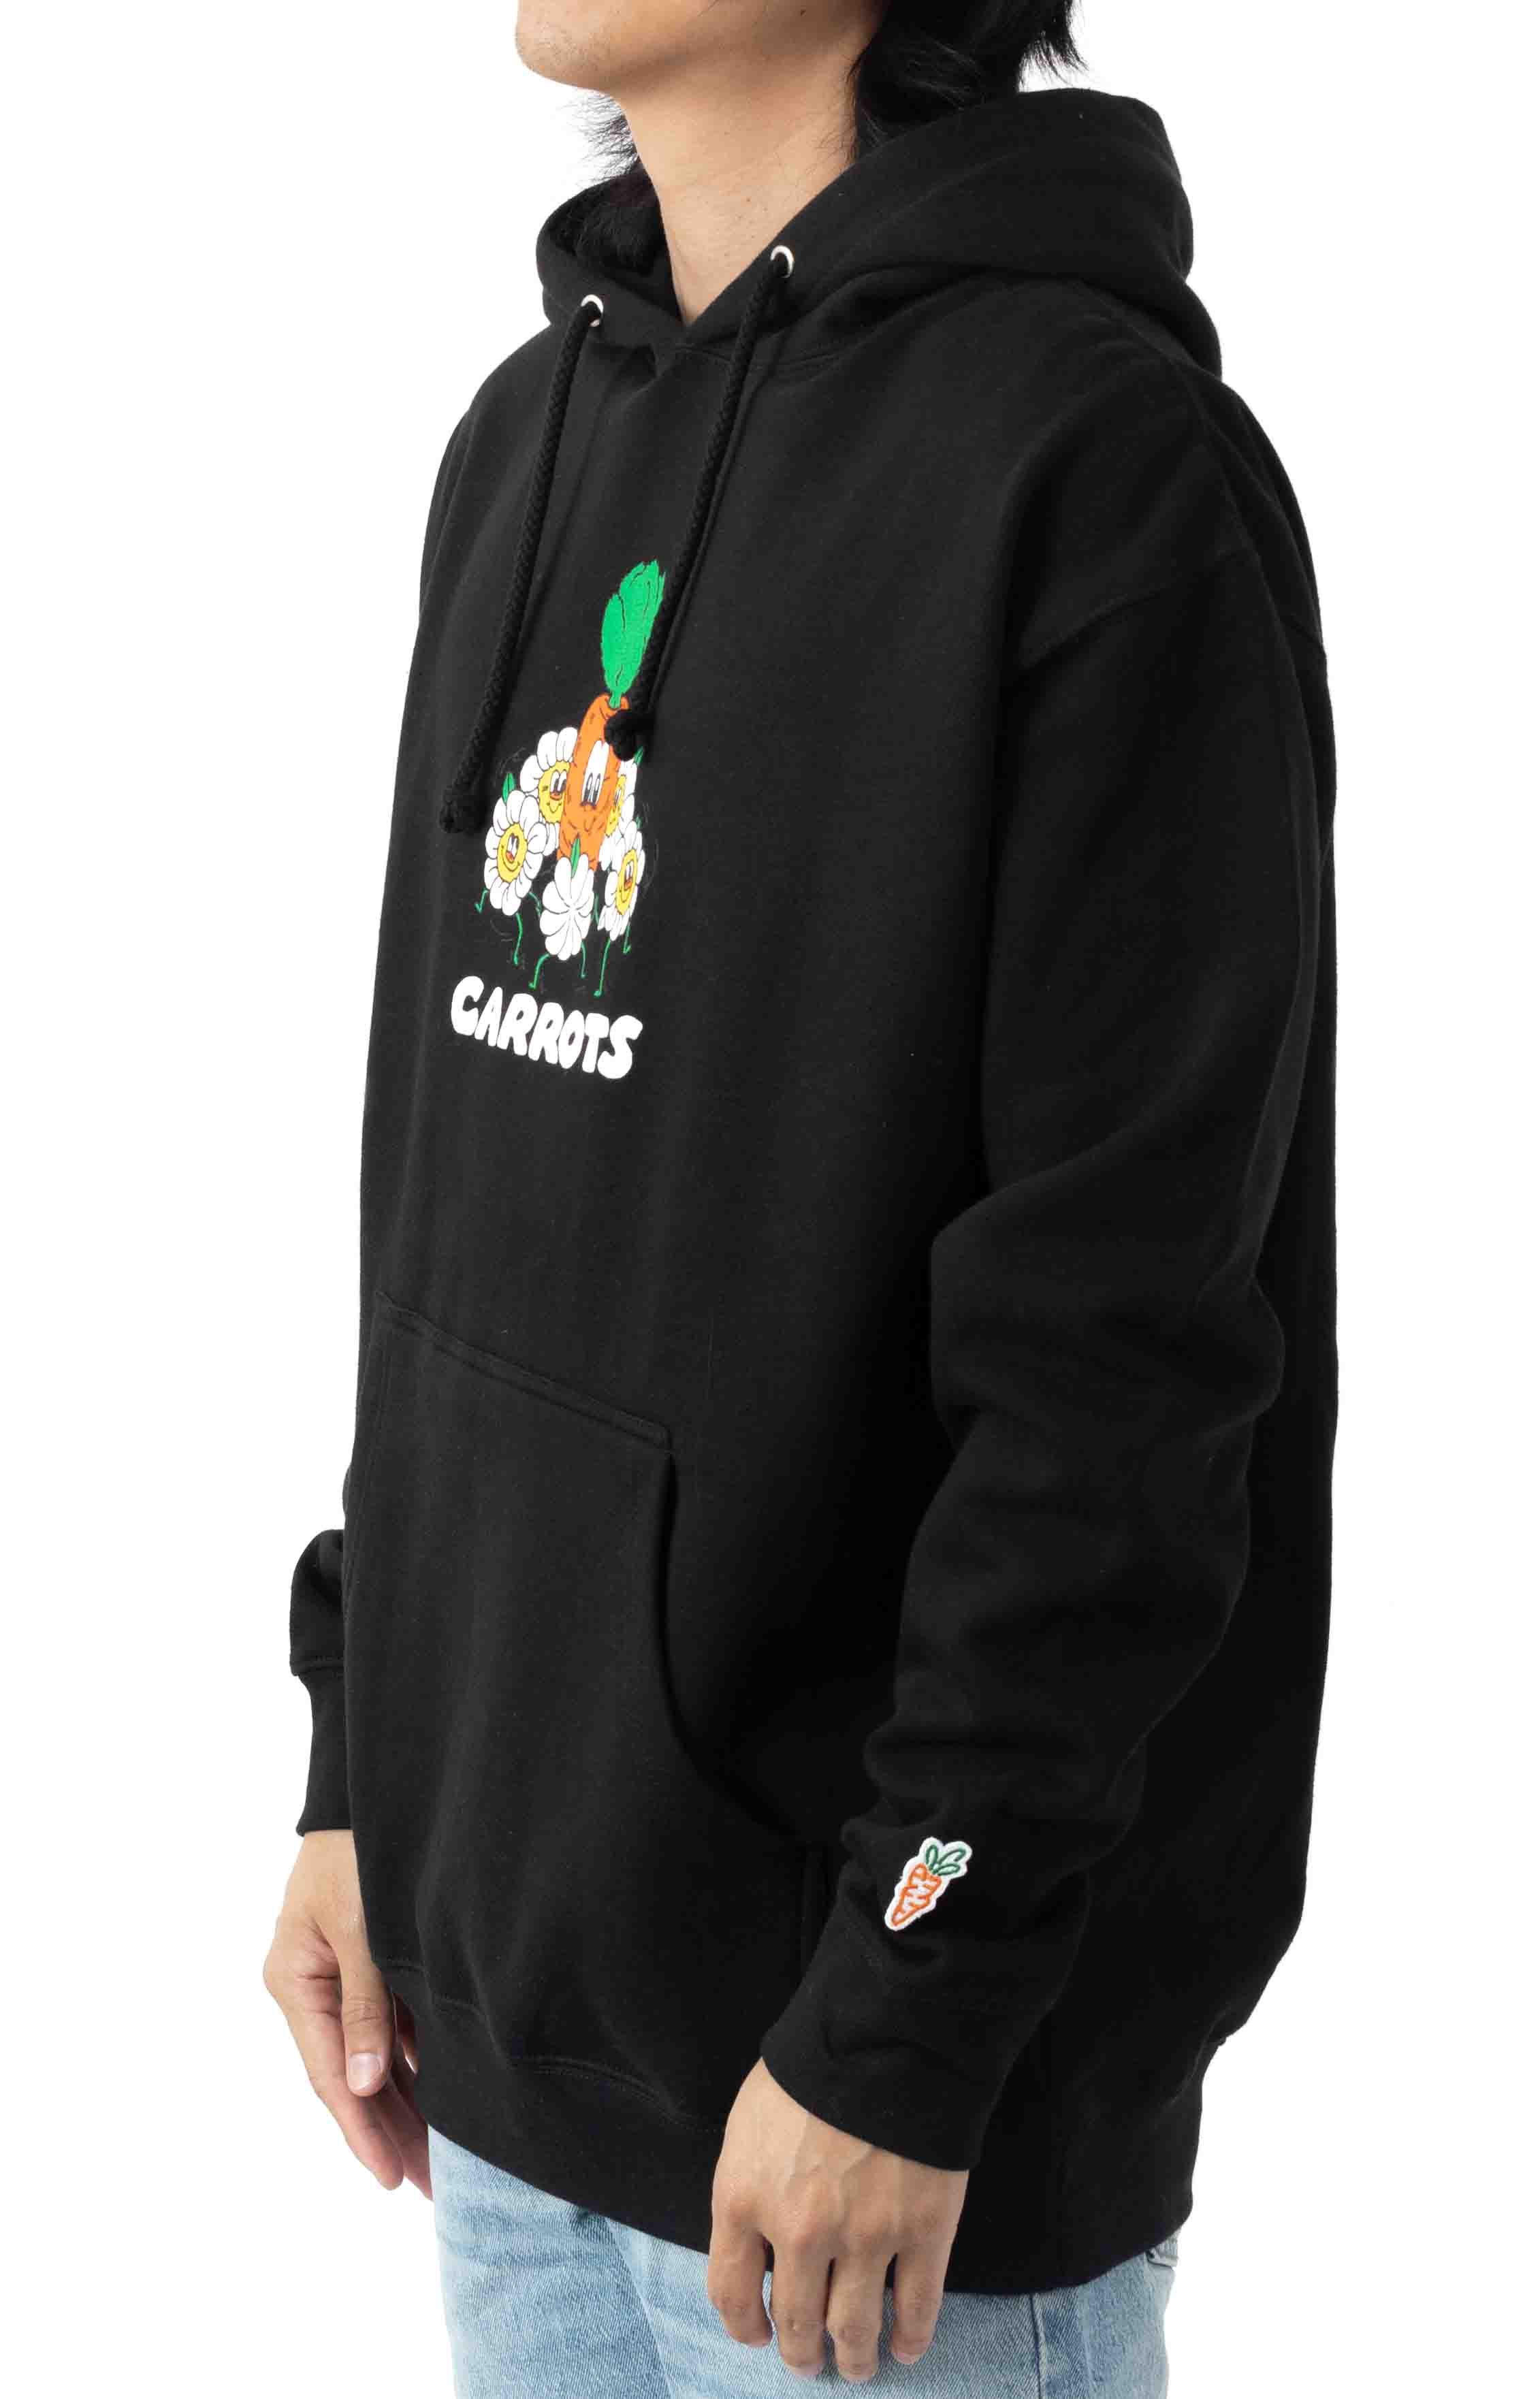 Ring Around Carrot Pullover Hoodie - Black  2